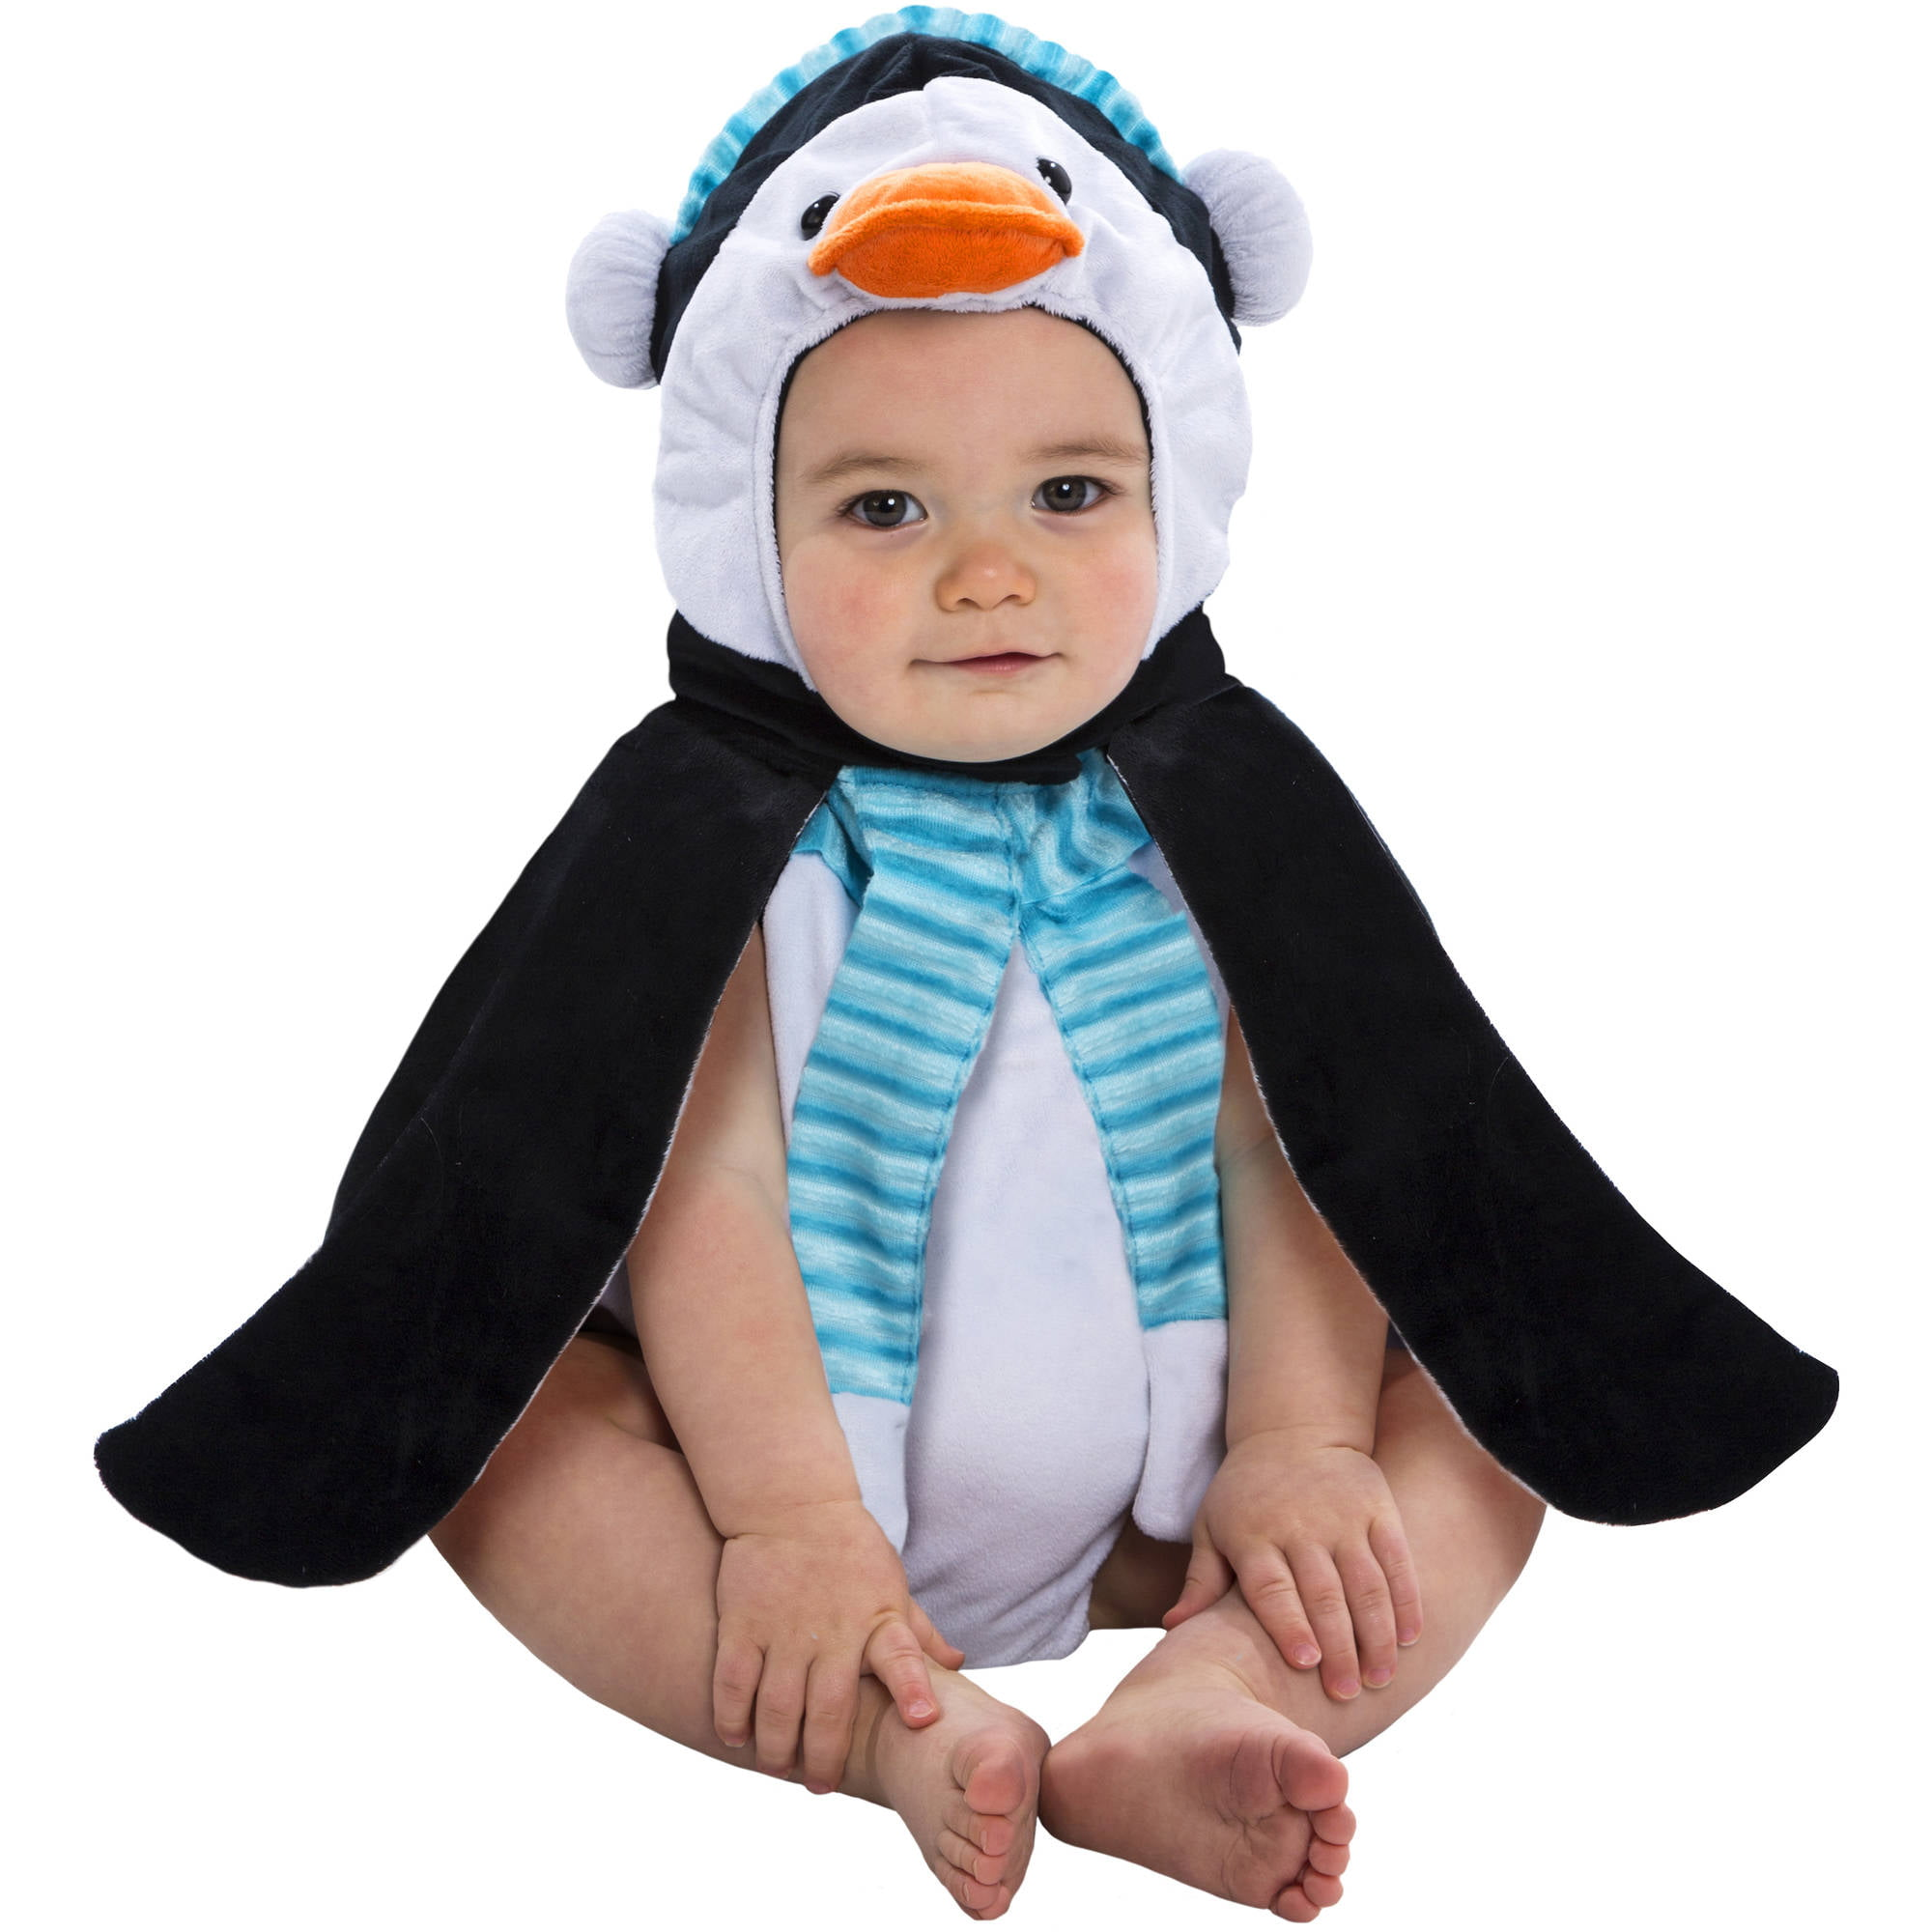 penguin bubble infant halloween dress up role play costume walmartcom - Infant Penguin Halloween Costume